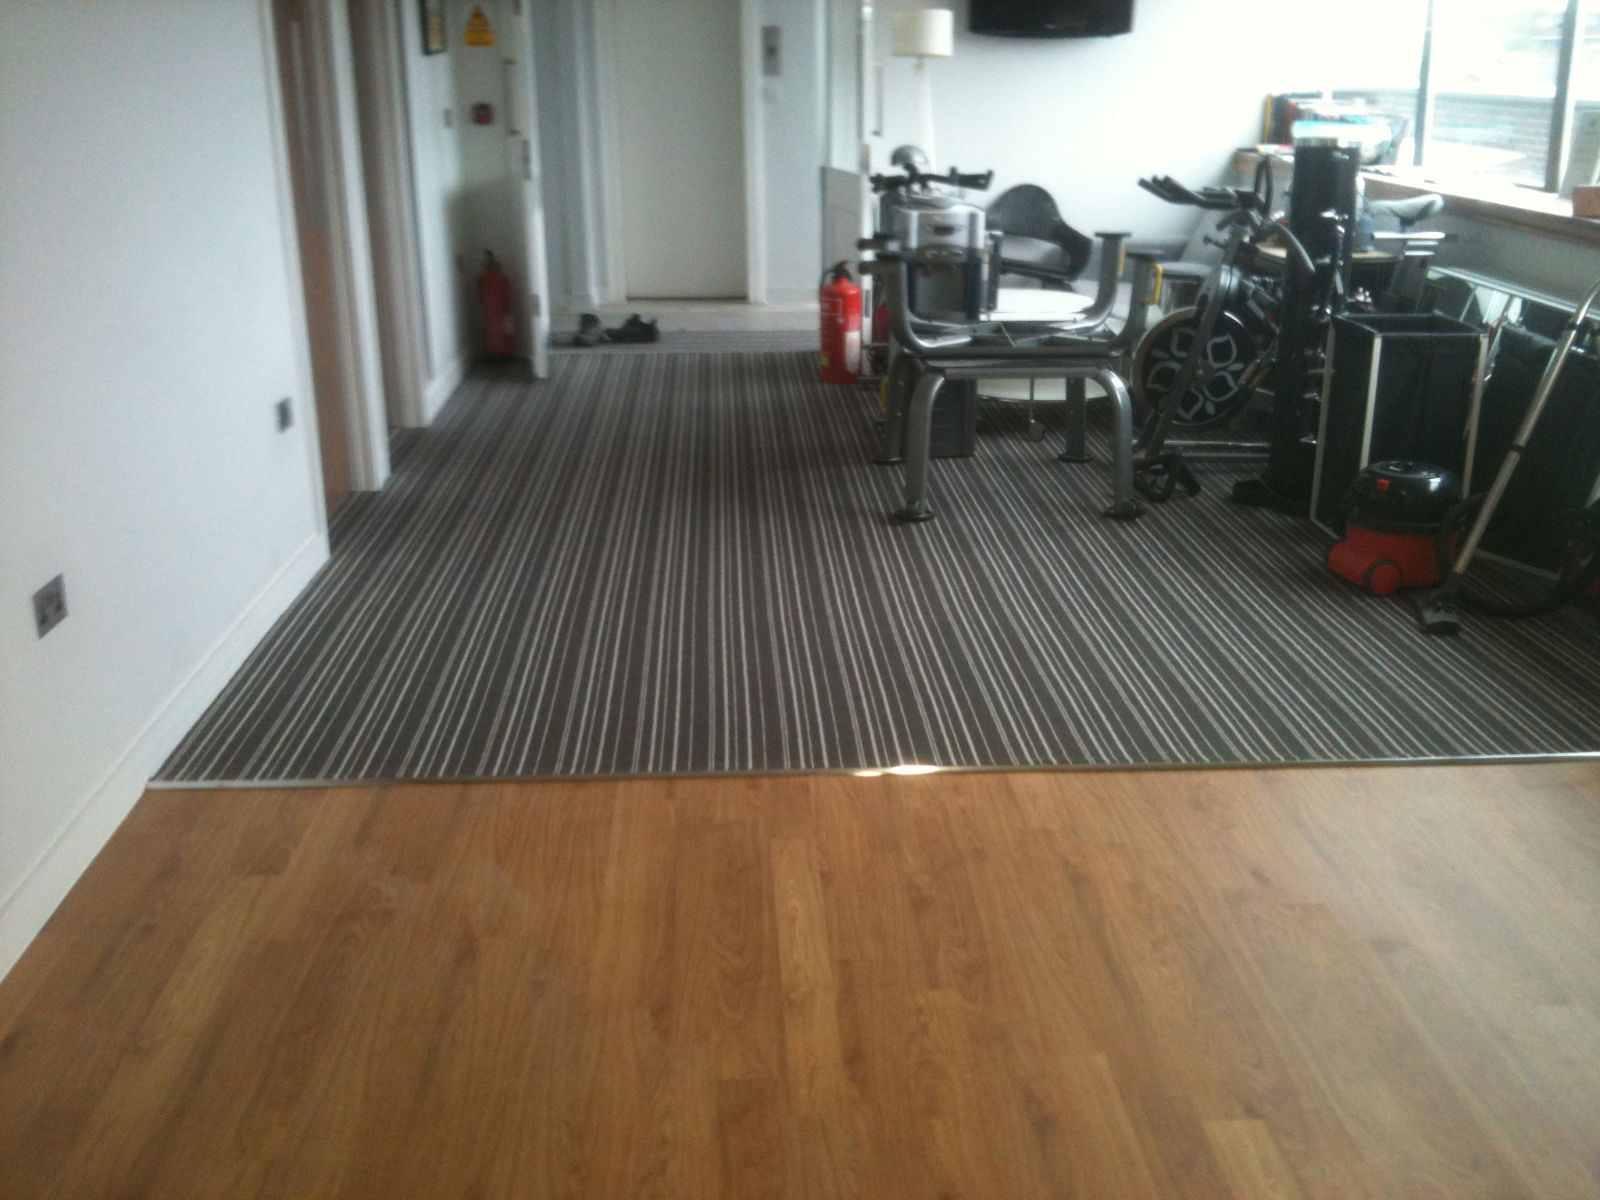 Floor installation services commercial flooring services for Rubber laminate flooring